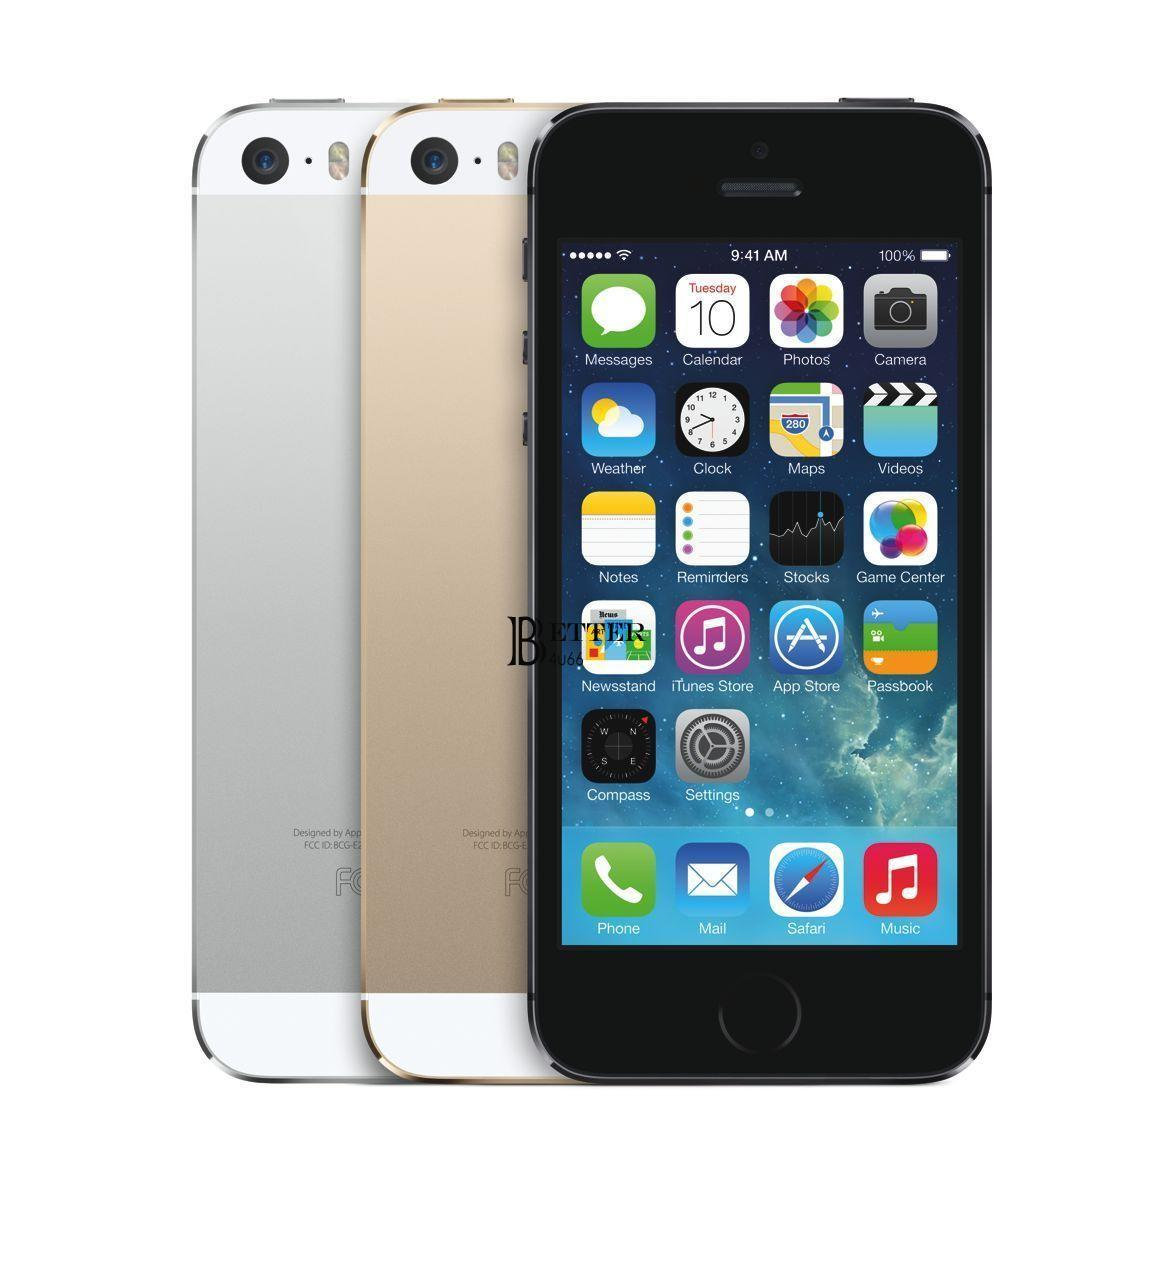 apple iphone 5 5c 5s 6 6 plus gsm unlocked ios smartphone refurbished bt6u ebay. Black Bedroom Furniture Sets. Home Design Ideas